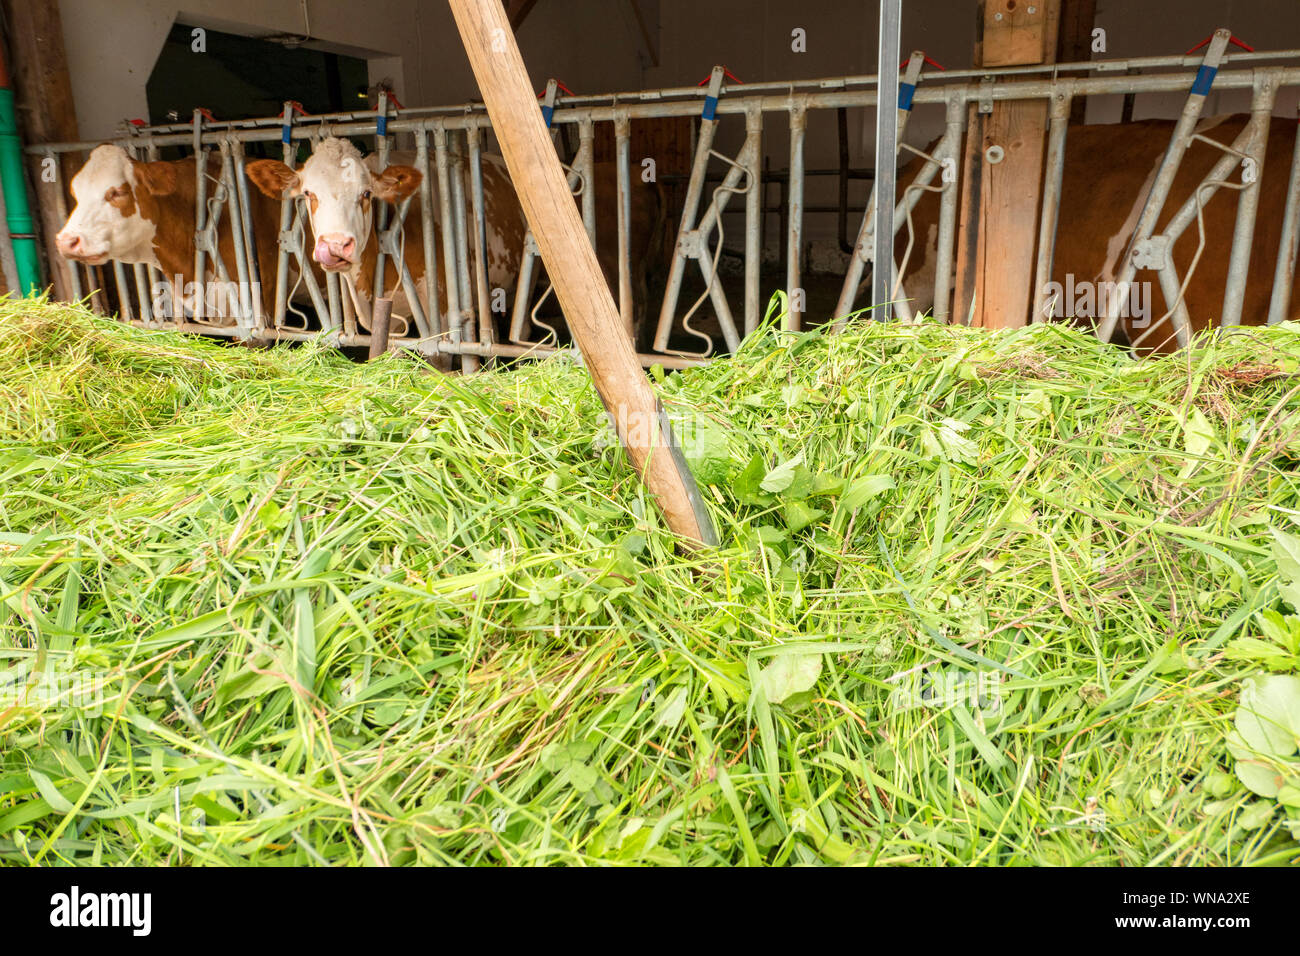 Dung fork in a mountain of freshly cut grass in front of a cowshed Stock Photo